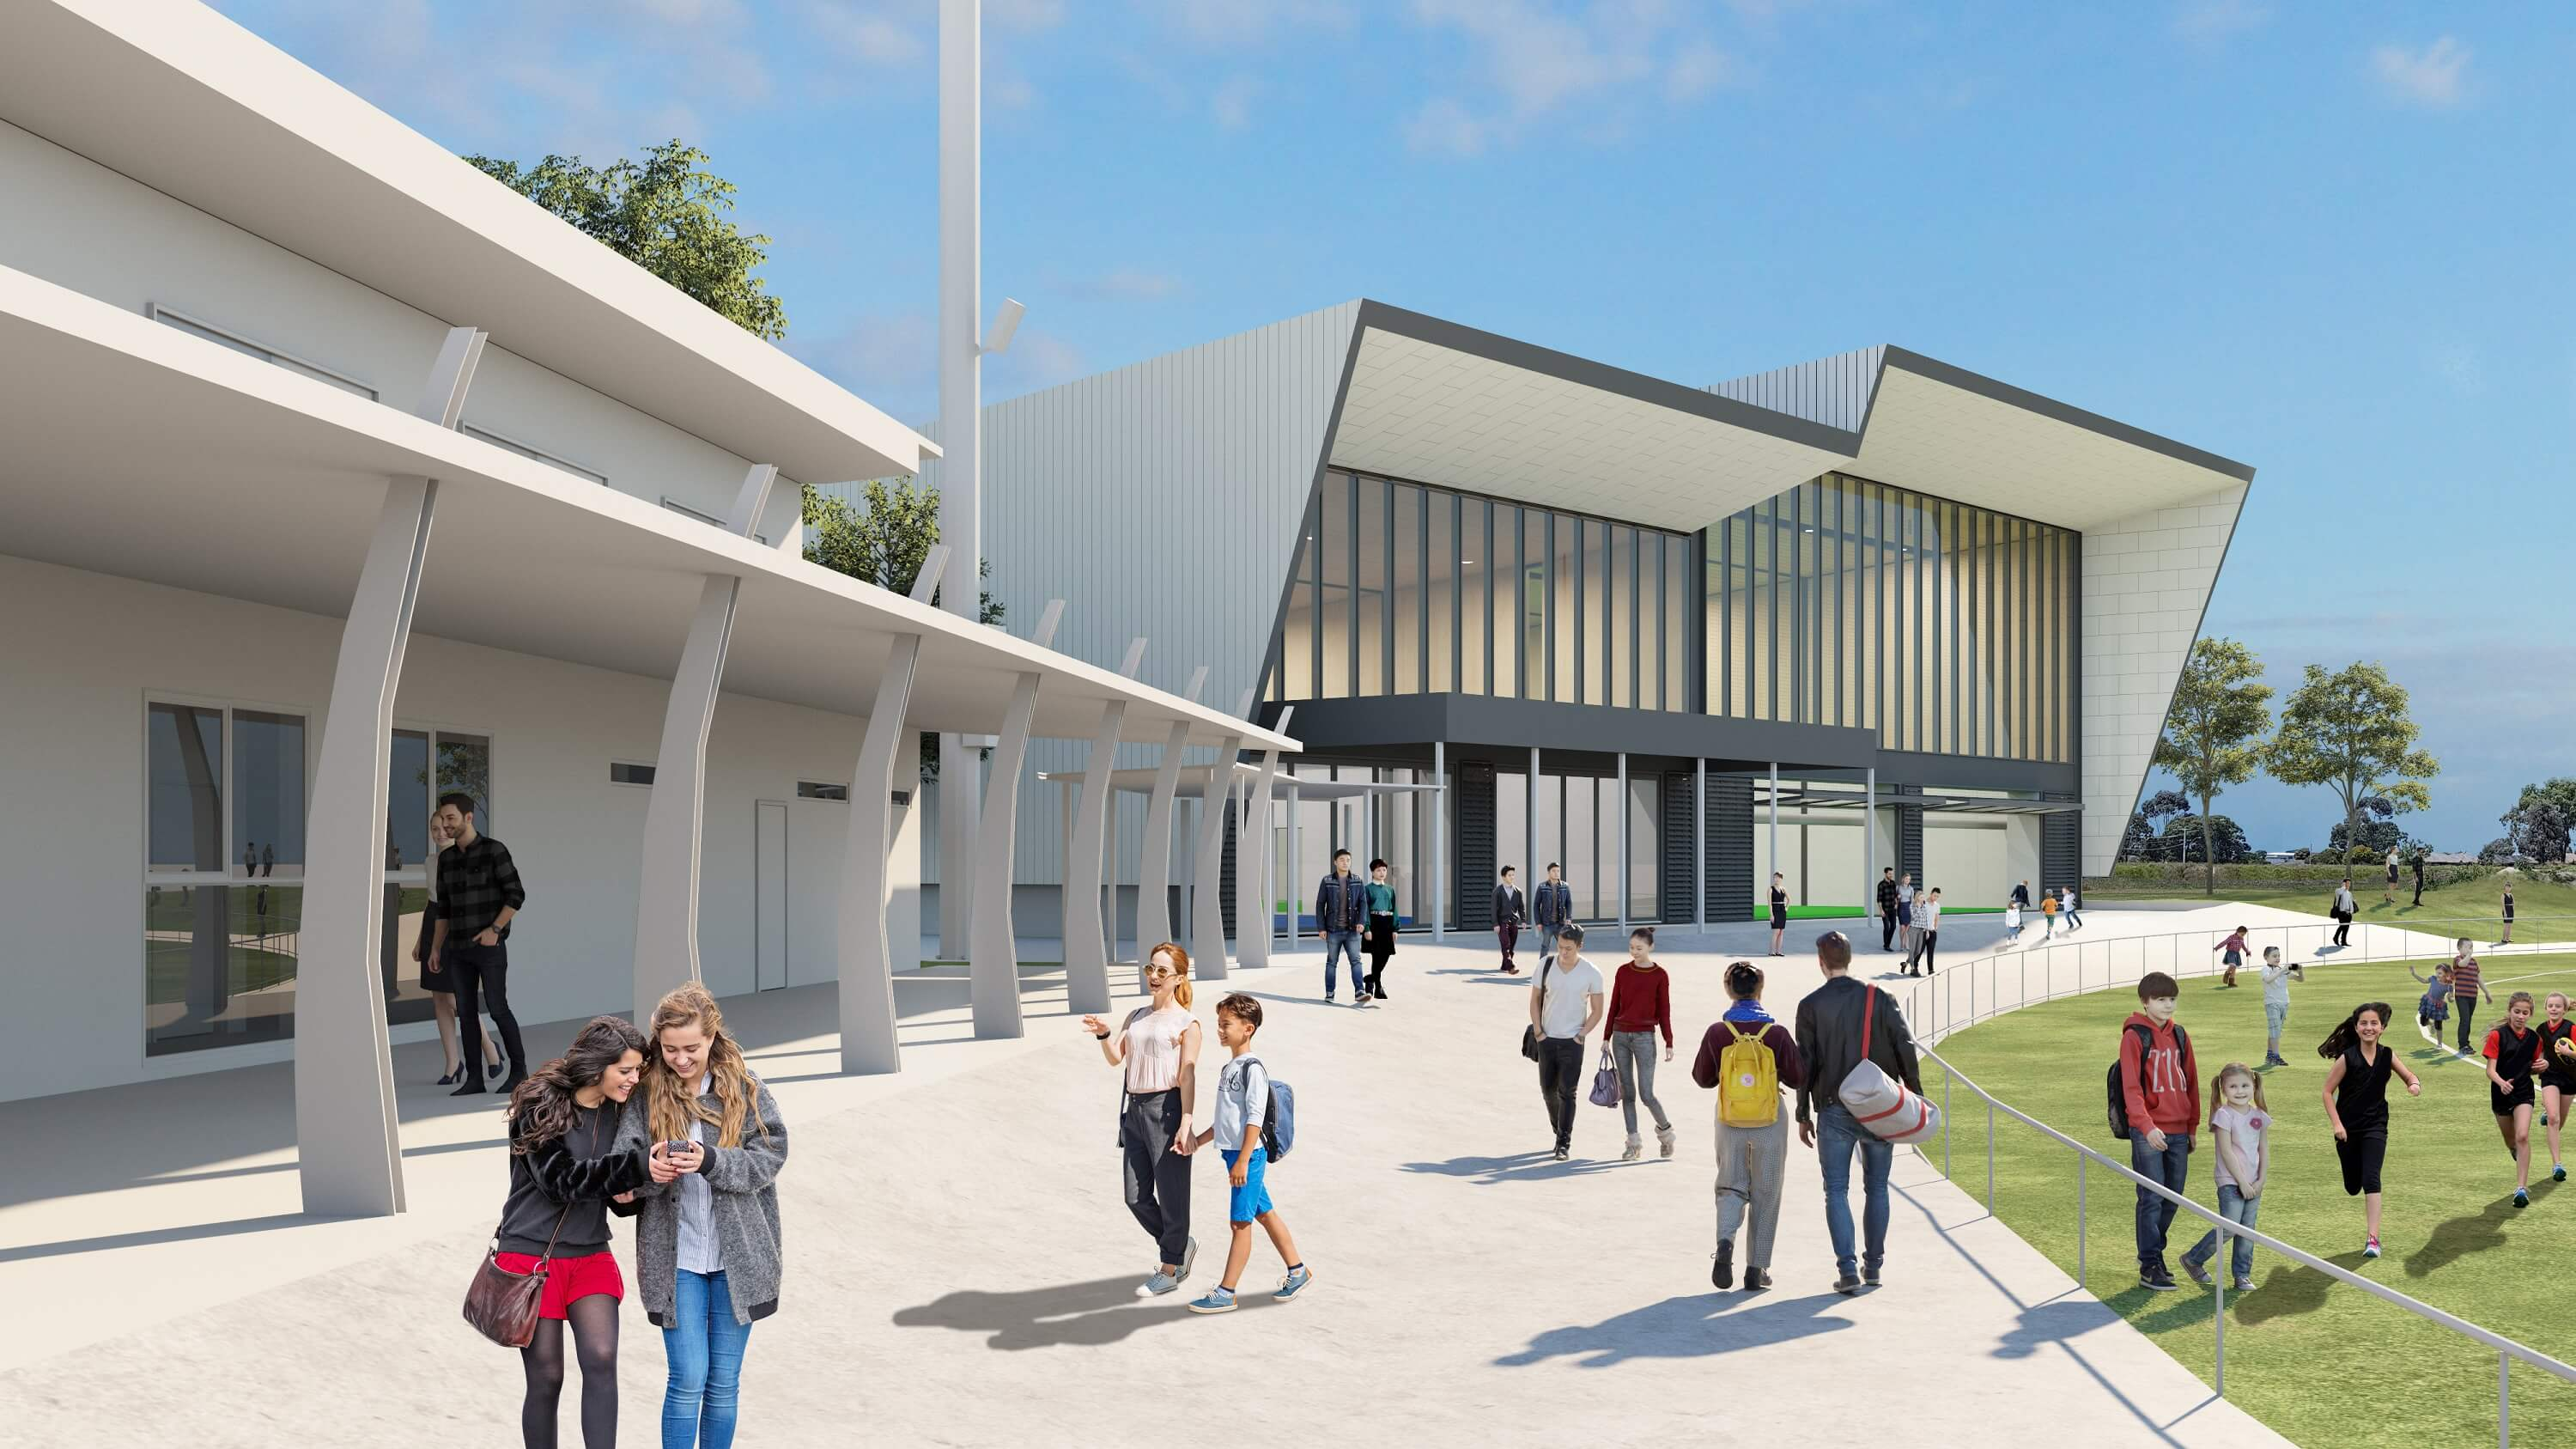 Artist's impression of the expansion